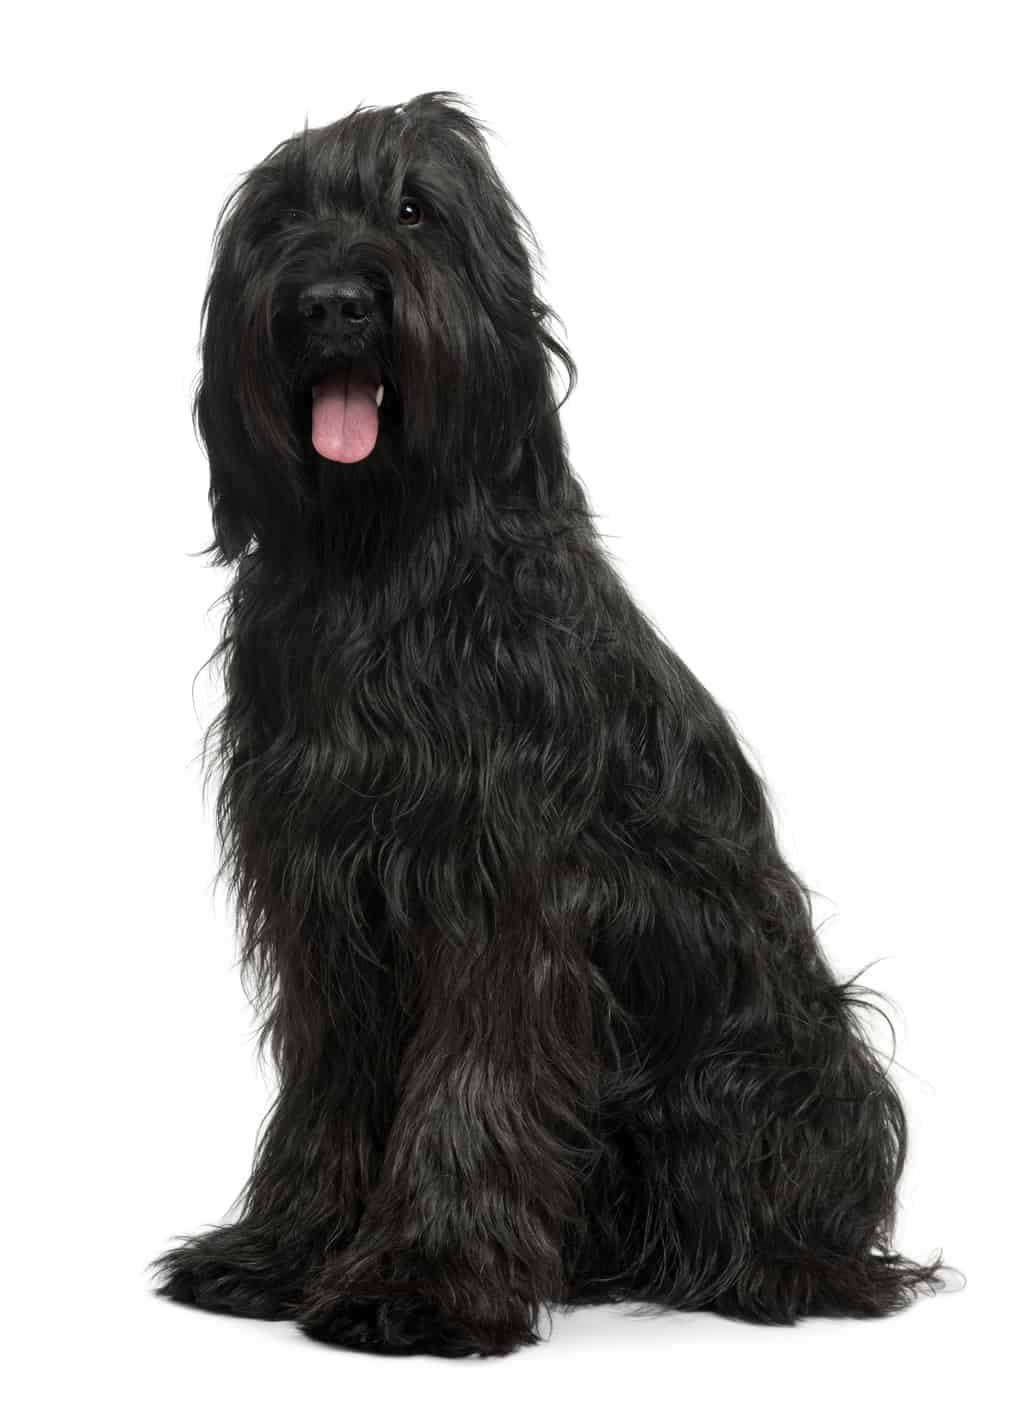 Briard, 3 years old, sitting in front of white background